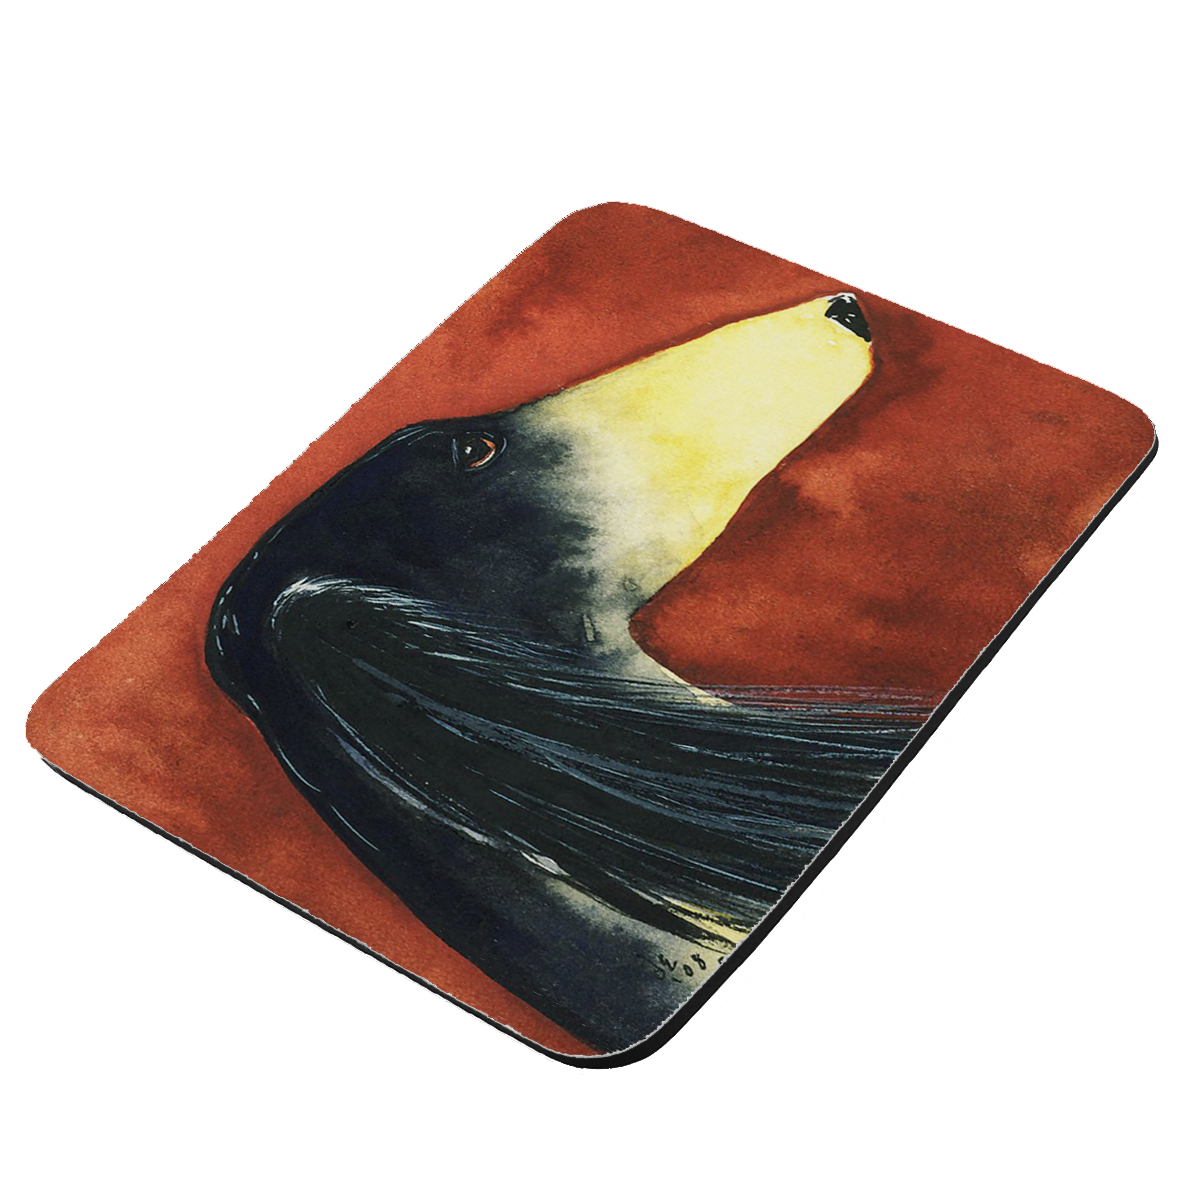 Black & Tan Saluki Sighthound Dog Art by Denise Every - KuzmarK Mousepad / Hot Pad / Trivet